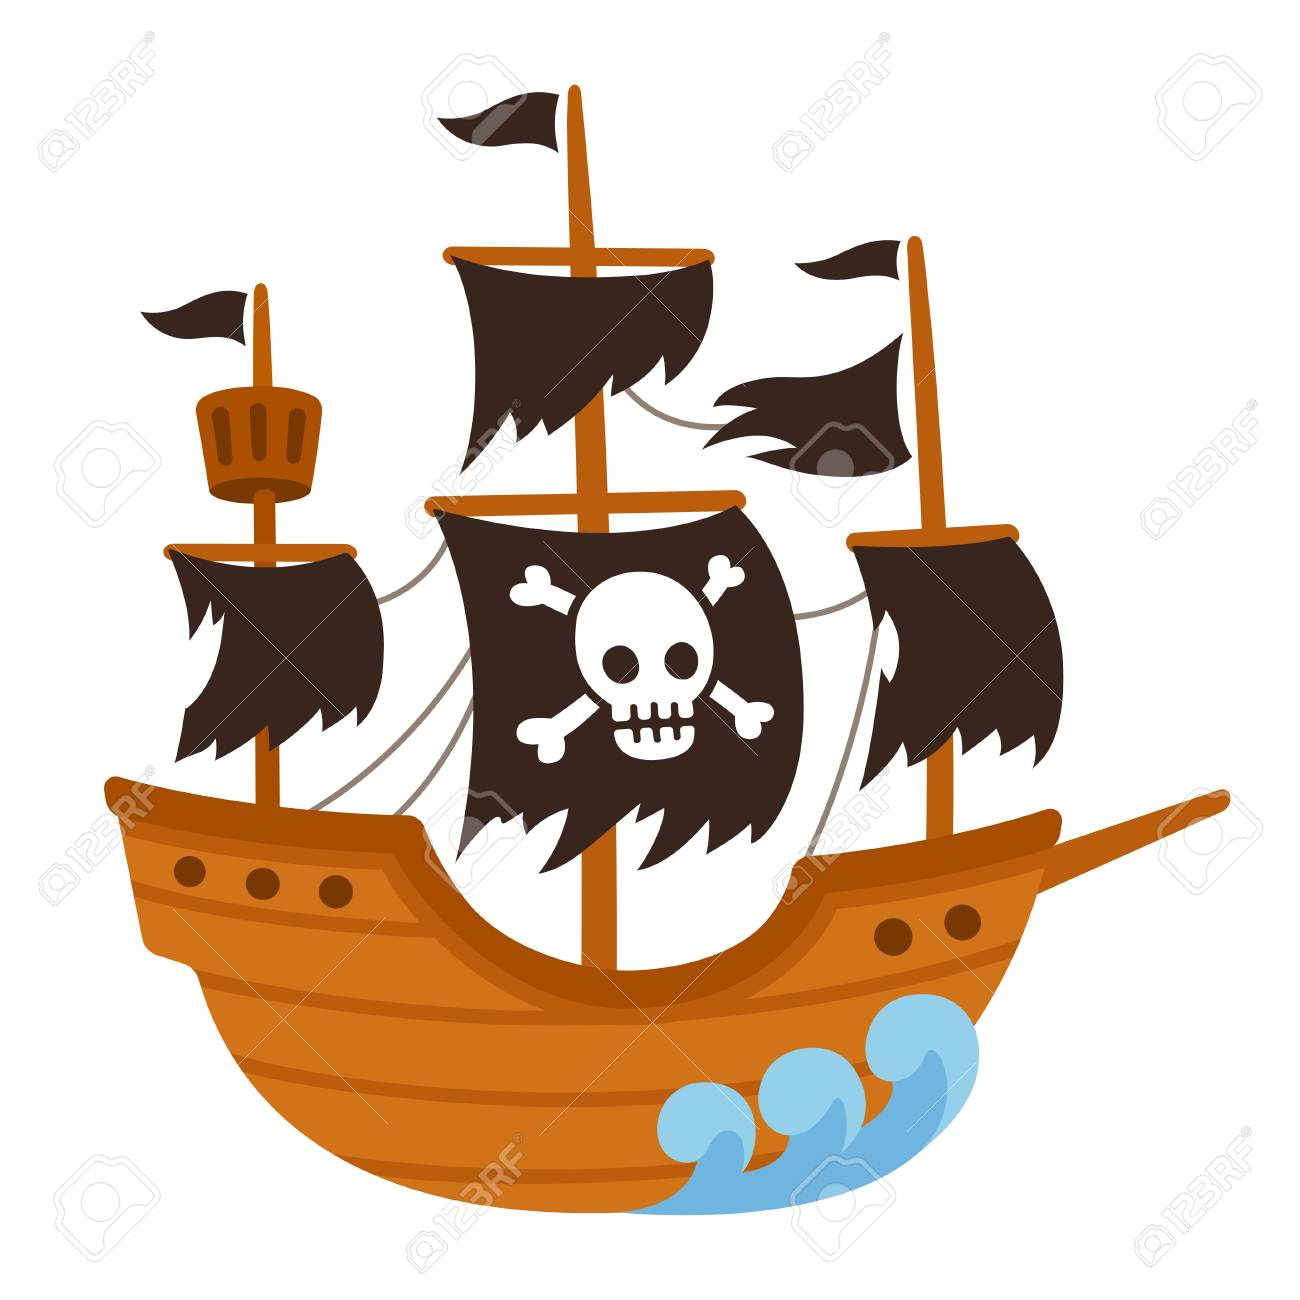 cartoon pirate ghost ship illustration with skull flag and torn rh 123rf com Tattered Pirate Flag Clip Art Old Scroll Clip Art